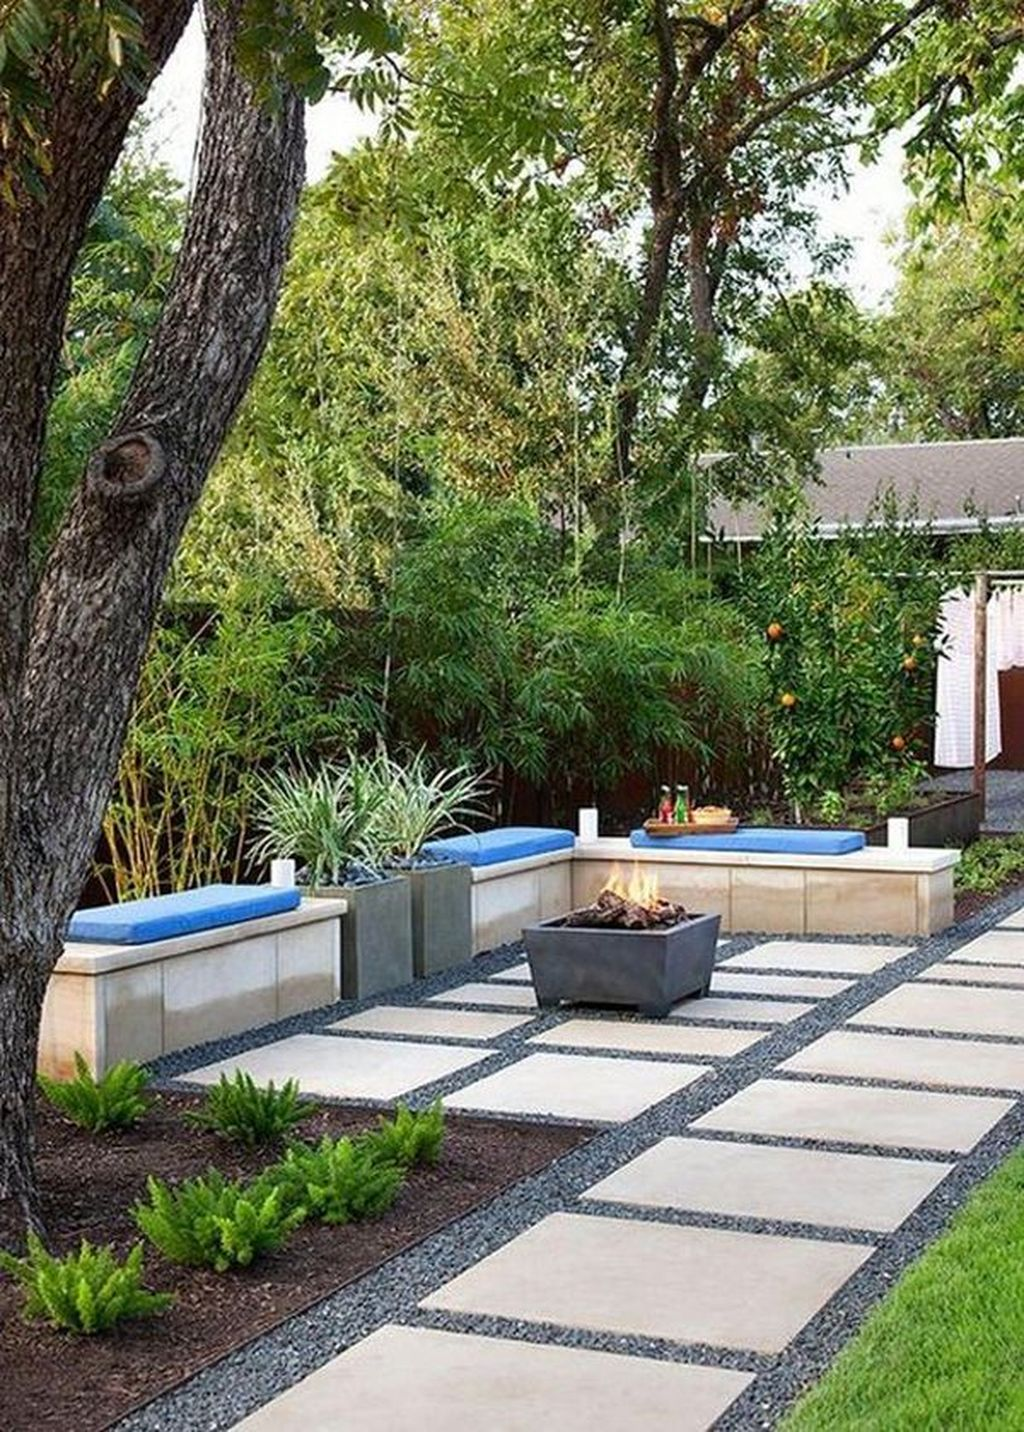 The Best Minimalist Garden Design Ideas You Have To Try 26